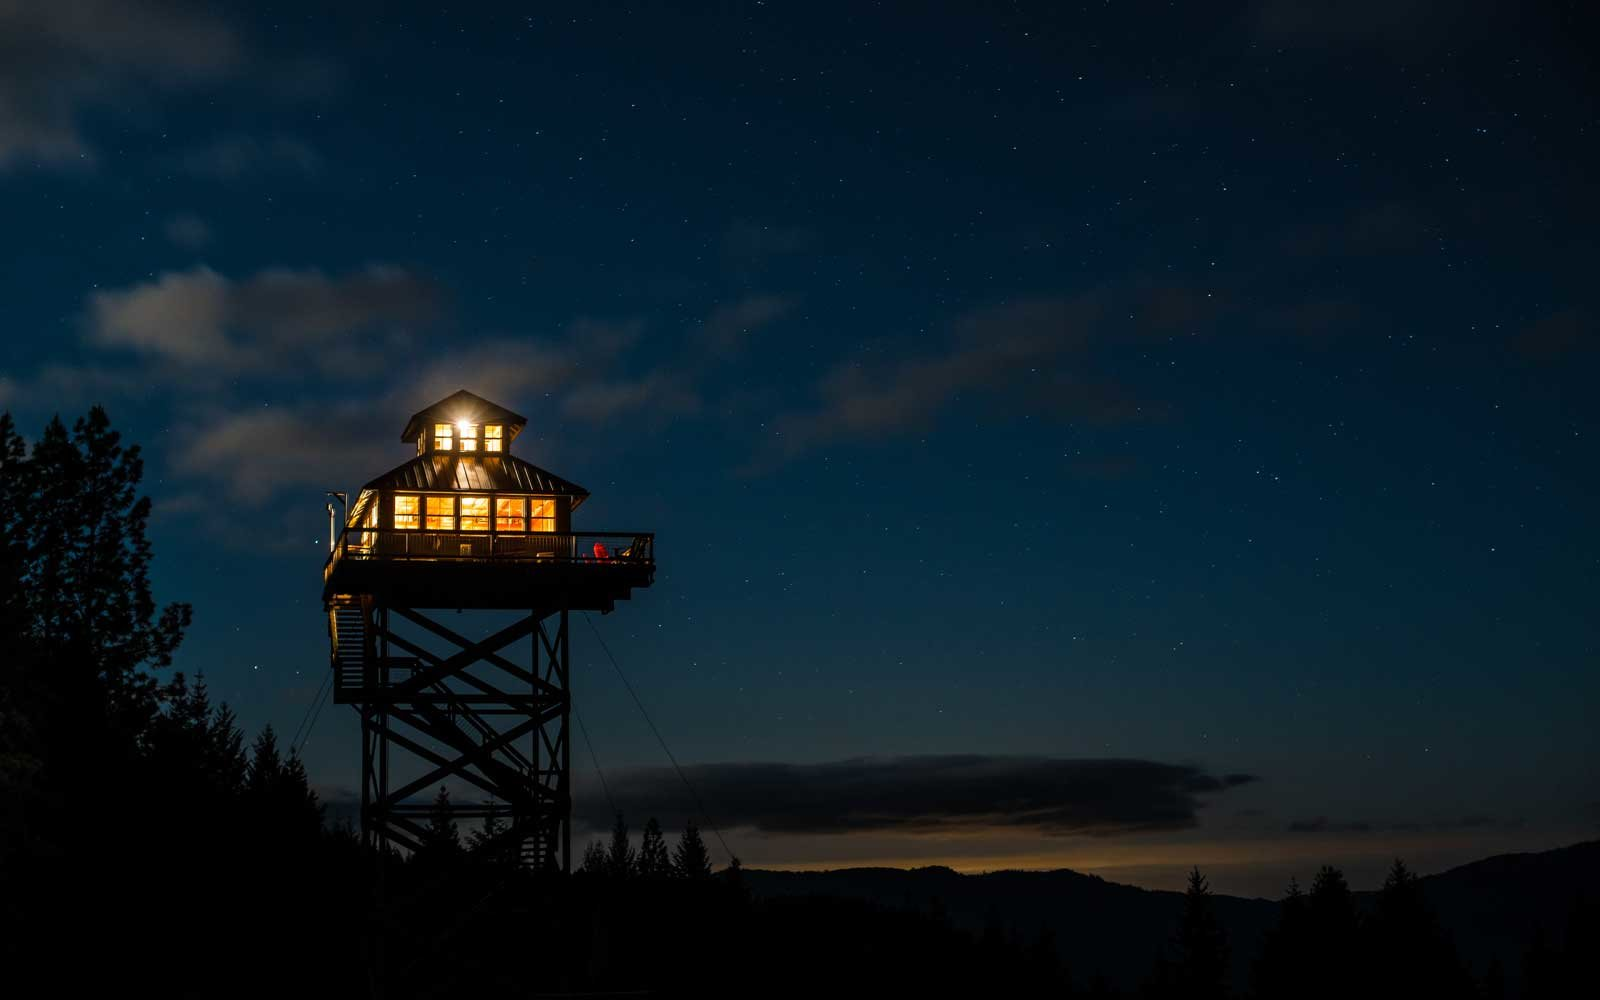 Fire Lookout Towers built by the US Forest Service in the early 1900s in Oregon